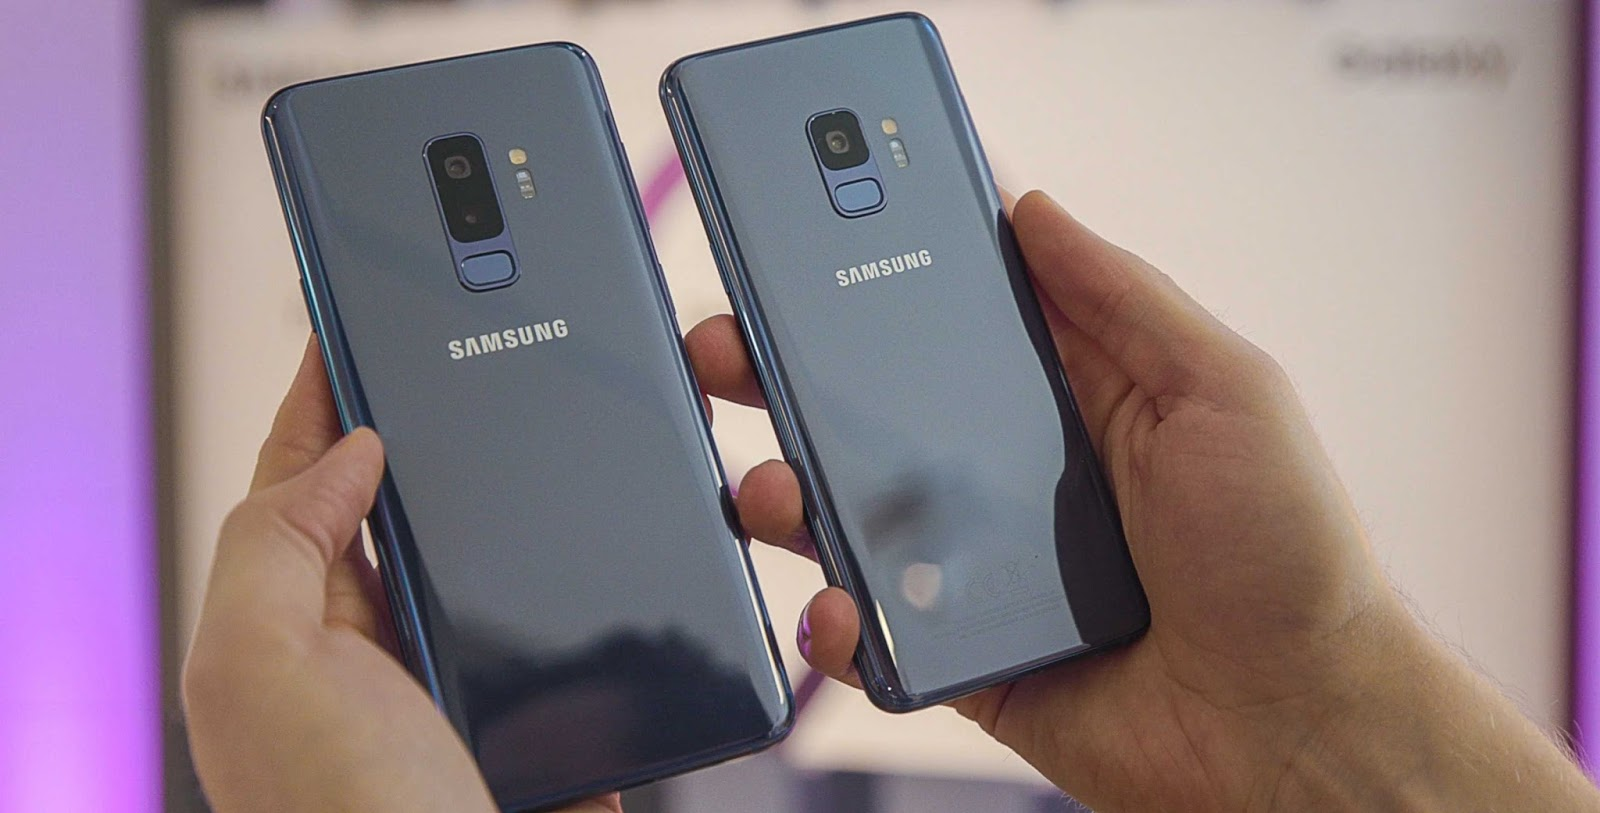 Samsung Galaxy S9 and S9 Plus (Back) Best Android Gaming Phones For 2018